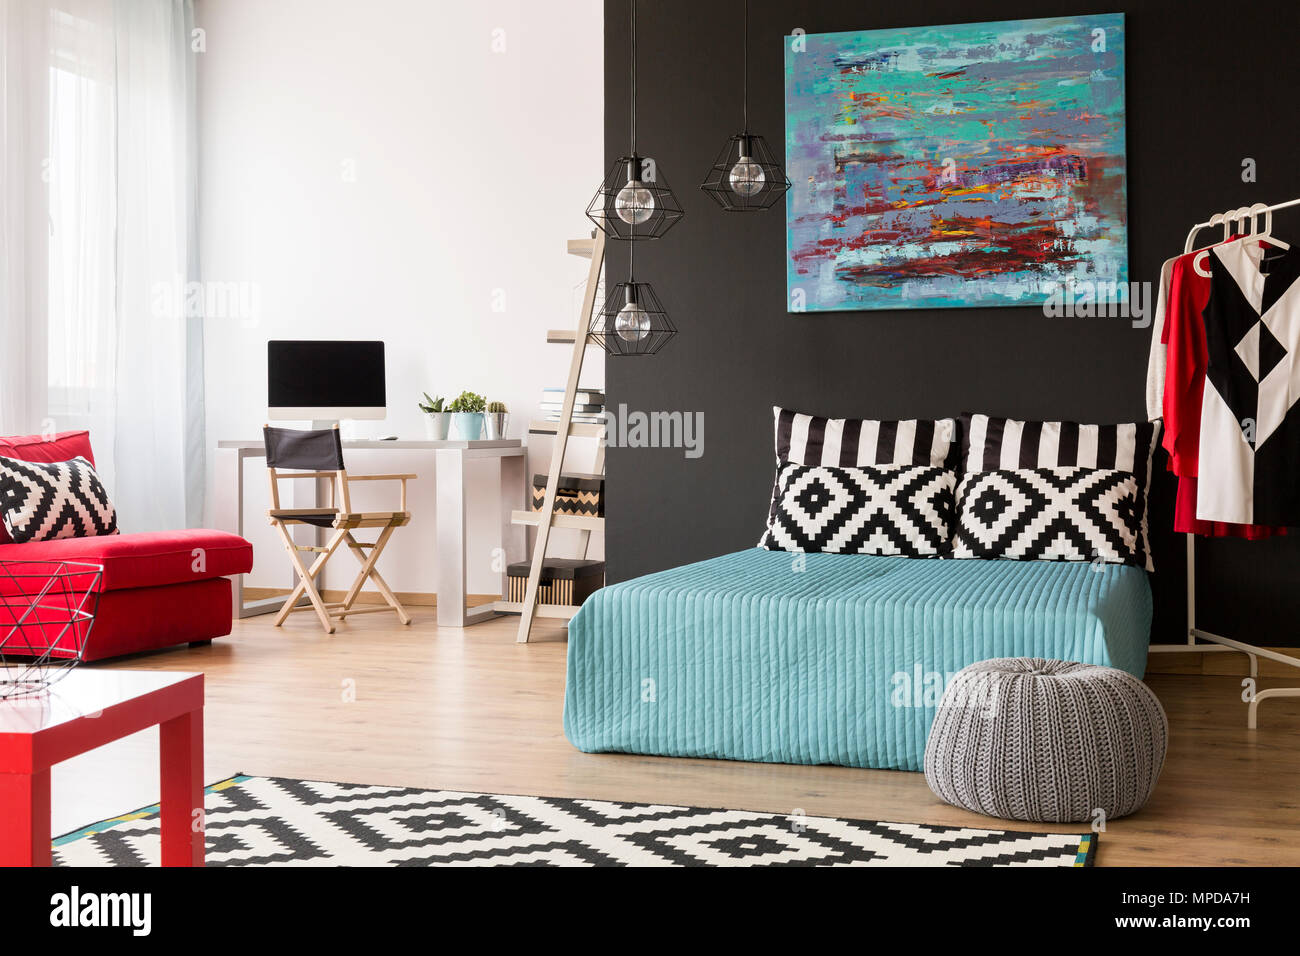 Spacious Black And White Flat In A New Style With Large Bed And Small Office Area Stock Photo Alamy